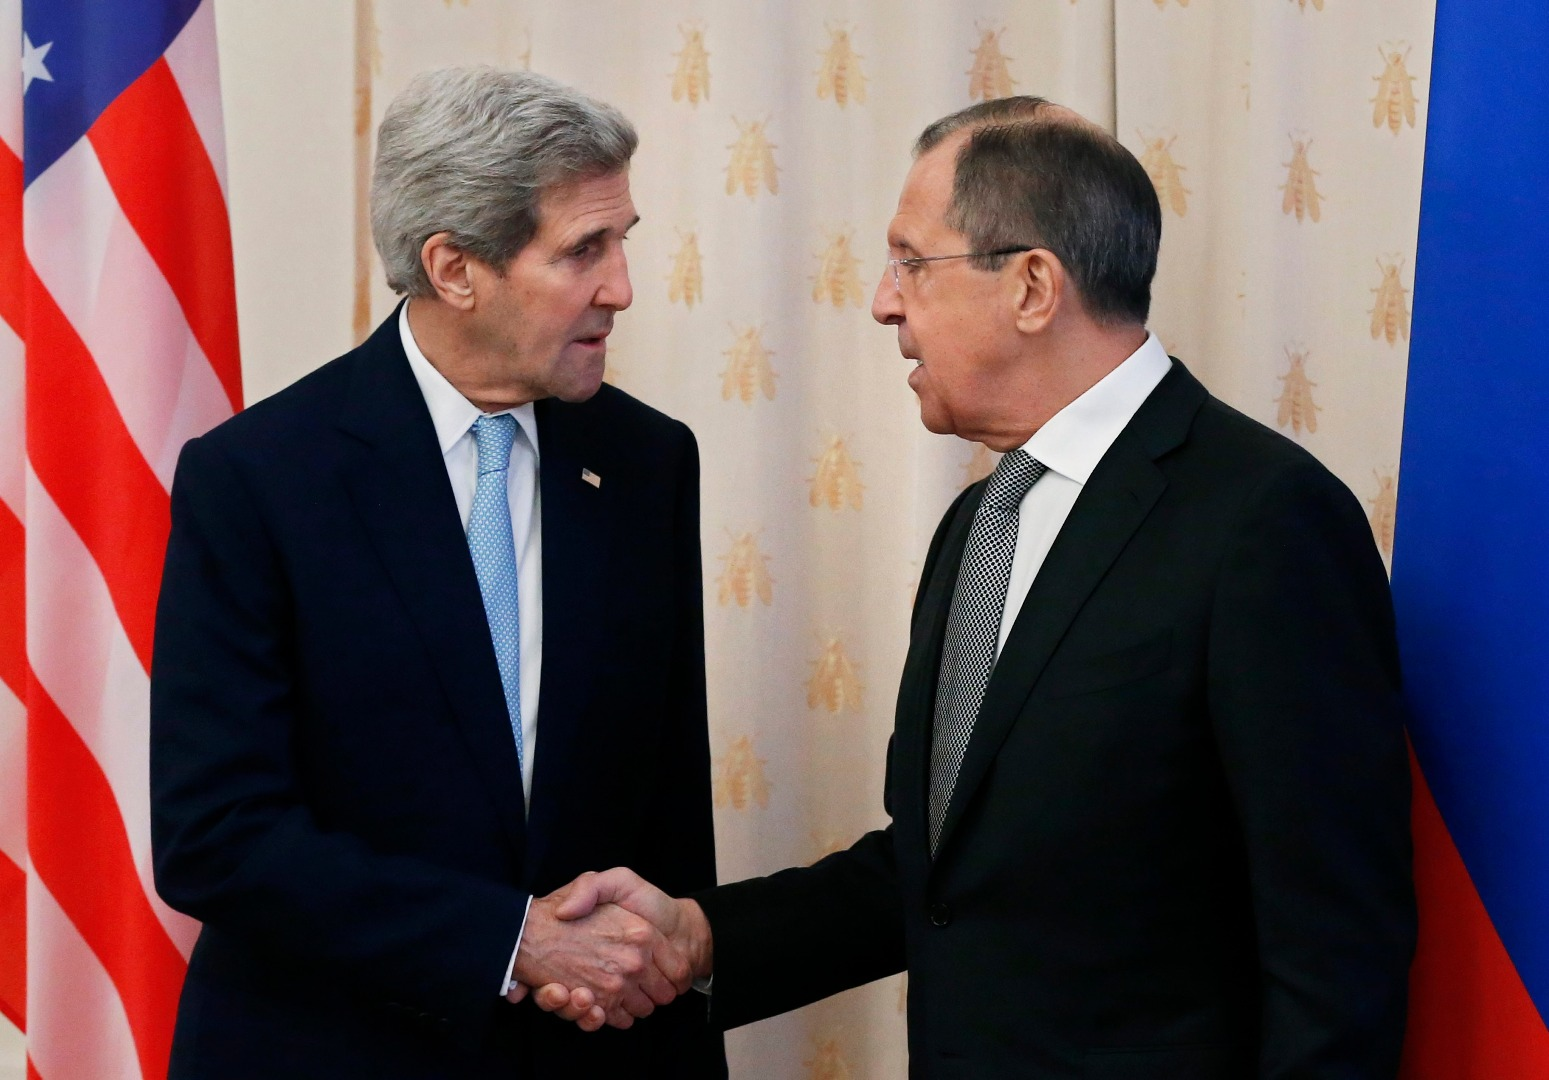 RUSSIA USA SYRIA CONFLICTS DIPLOMACY